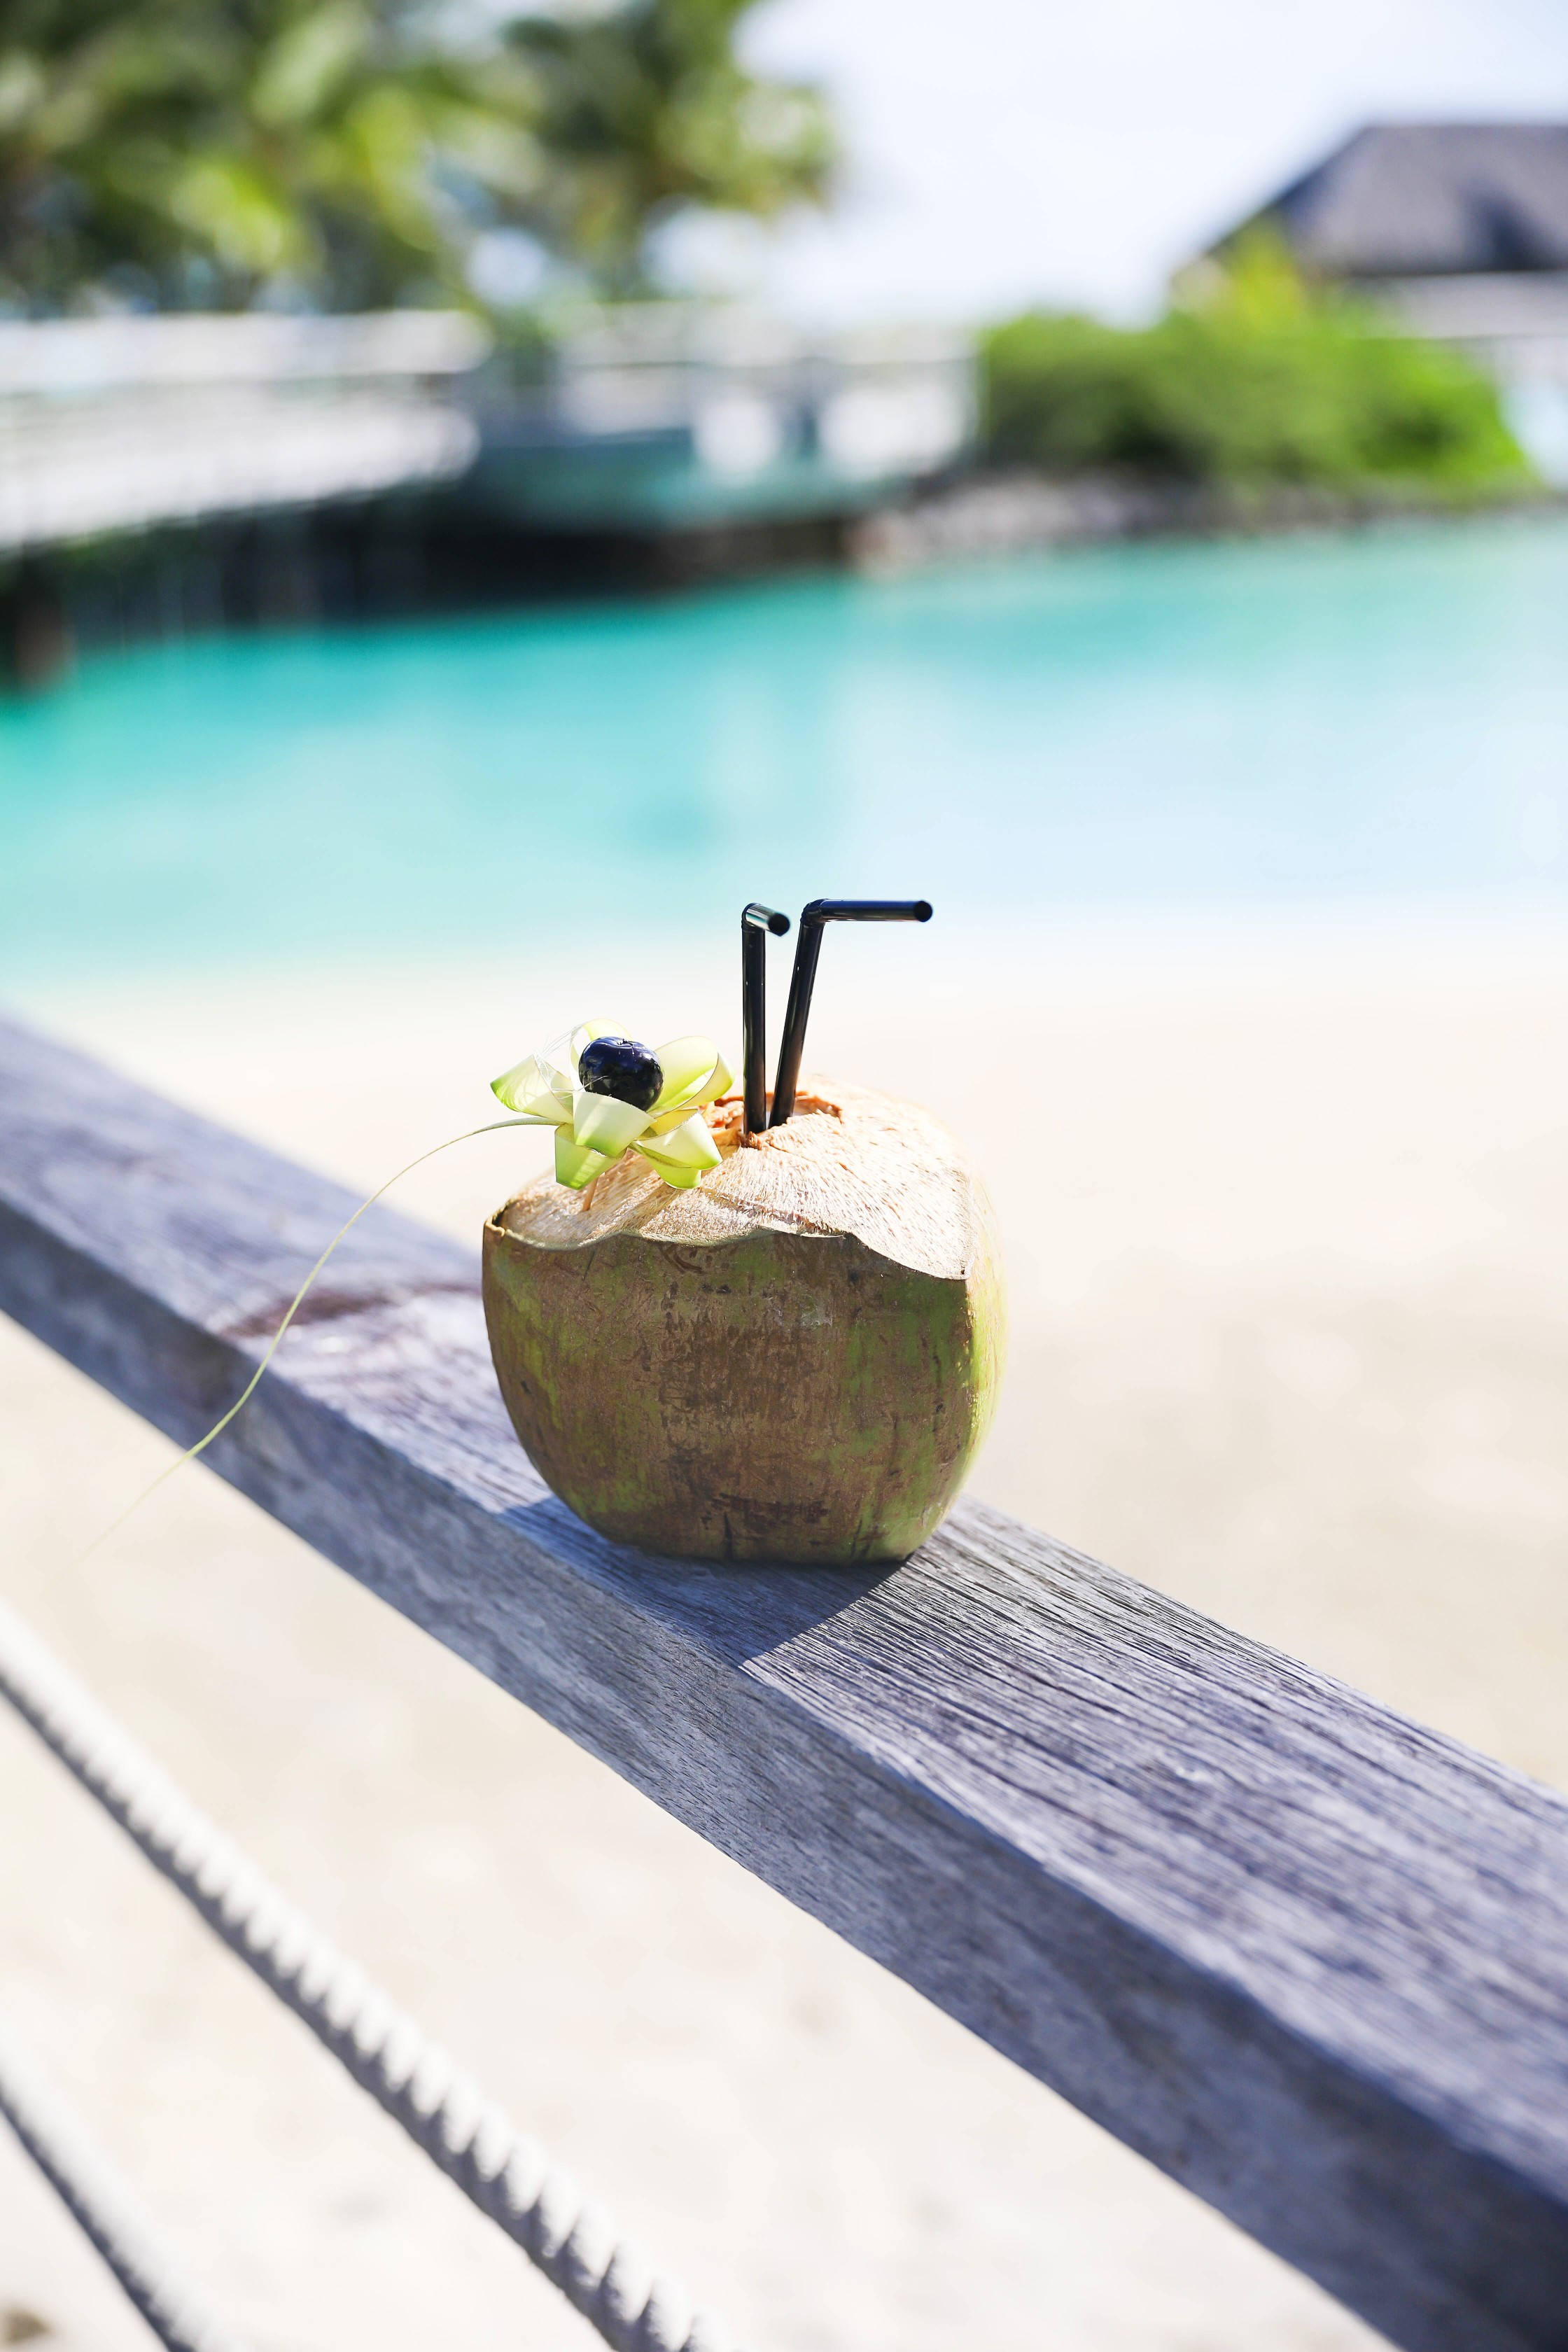 Coconut drink in bora bora, French Polynesia at the Intercontinental Hotel Thelasso! Cute beach photo and vacation photo inspiration! This black two piece high waisted long sleeve swimsuit bikini is my favorite! Details on travel blog Daily Dose of Charm by fashion blogger Lauren lindmark!